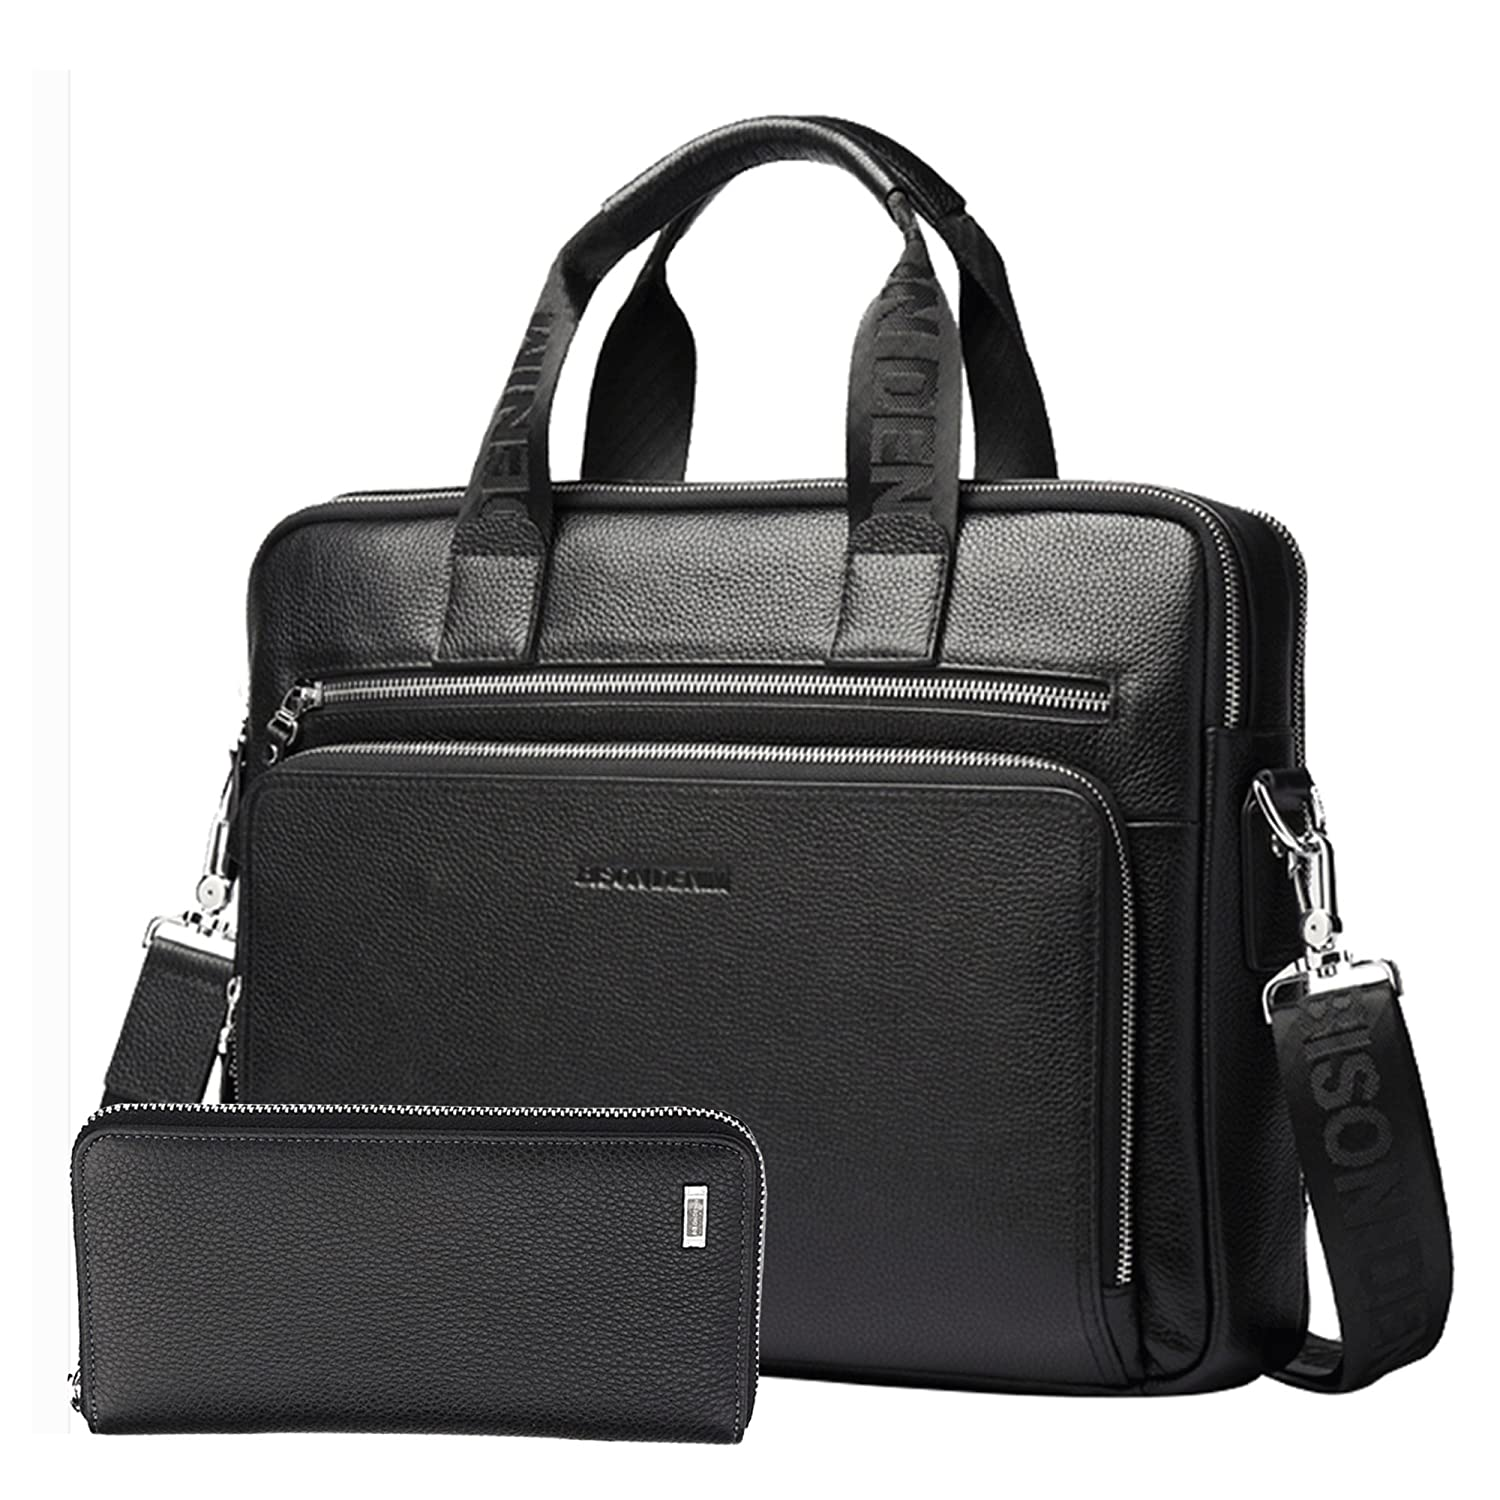 Bison Denim Mens Genuine Leather Briefcase Hand Bags Satchel (Black[2PCS]) N2333-3B+N8018-1B